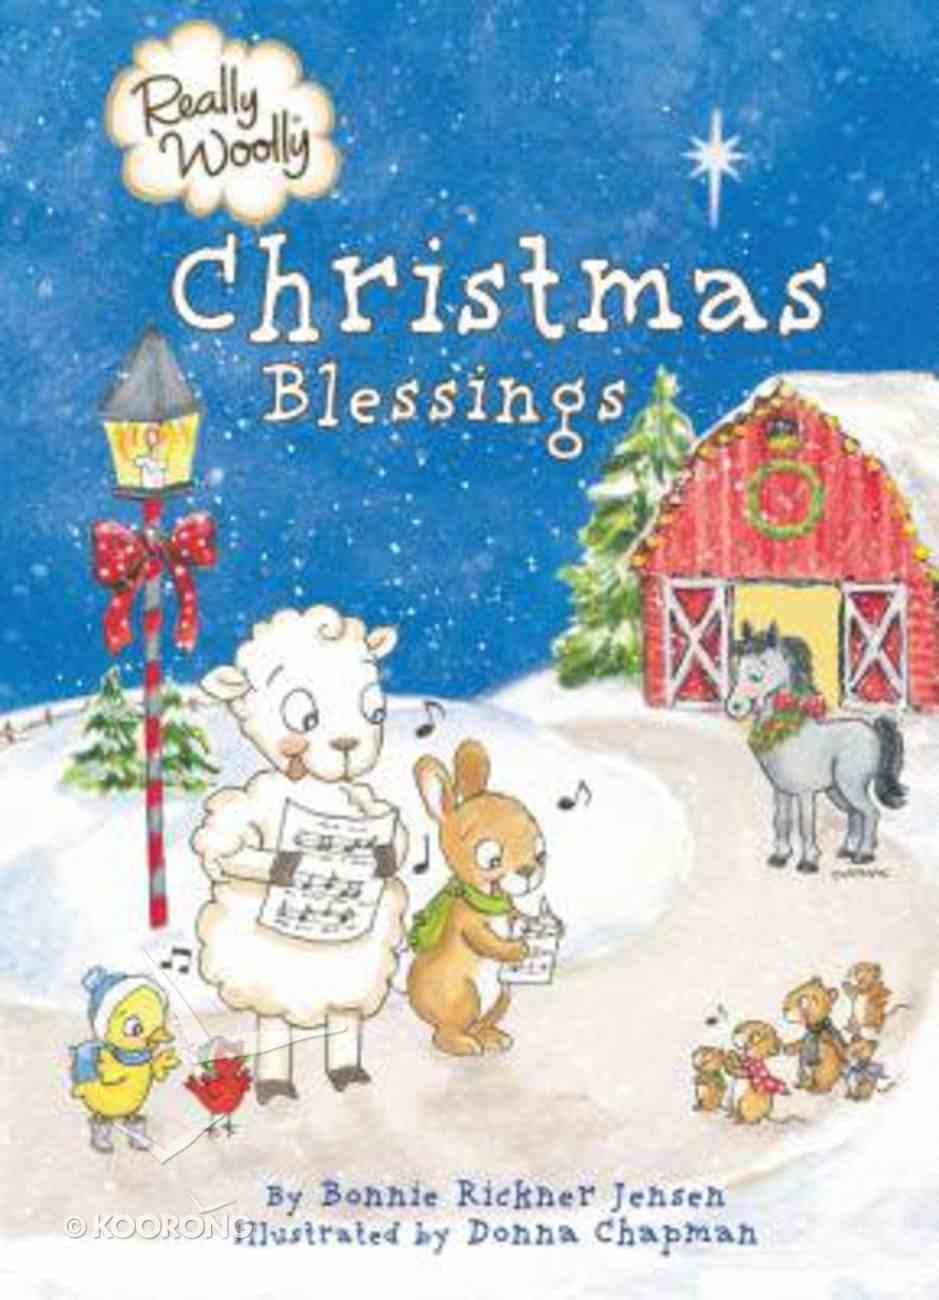 Christmas Blessings (Really Woolly Series) Board Book